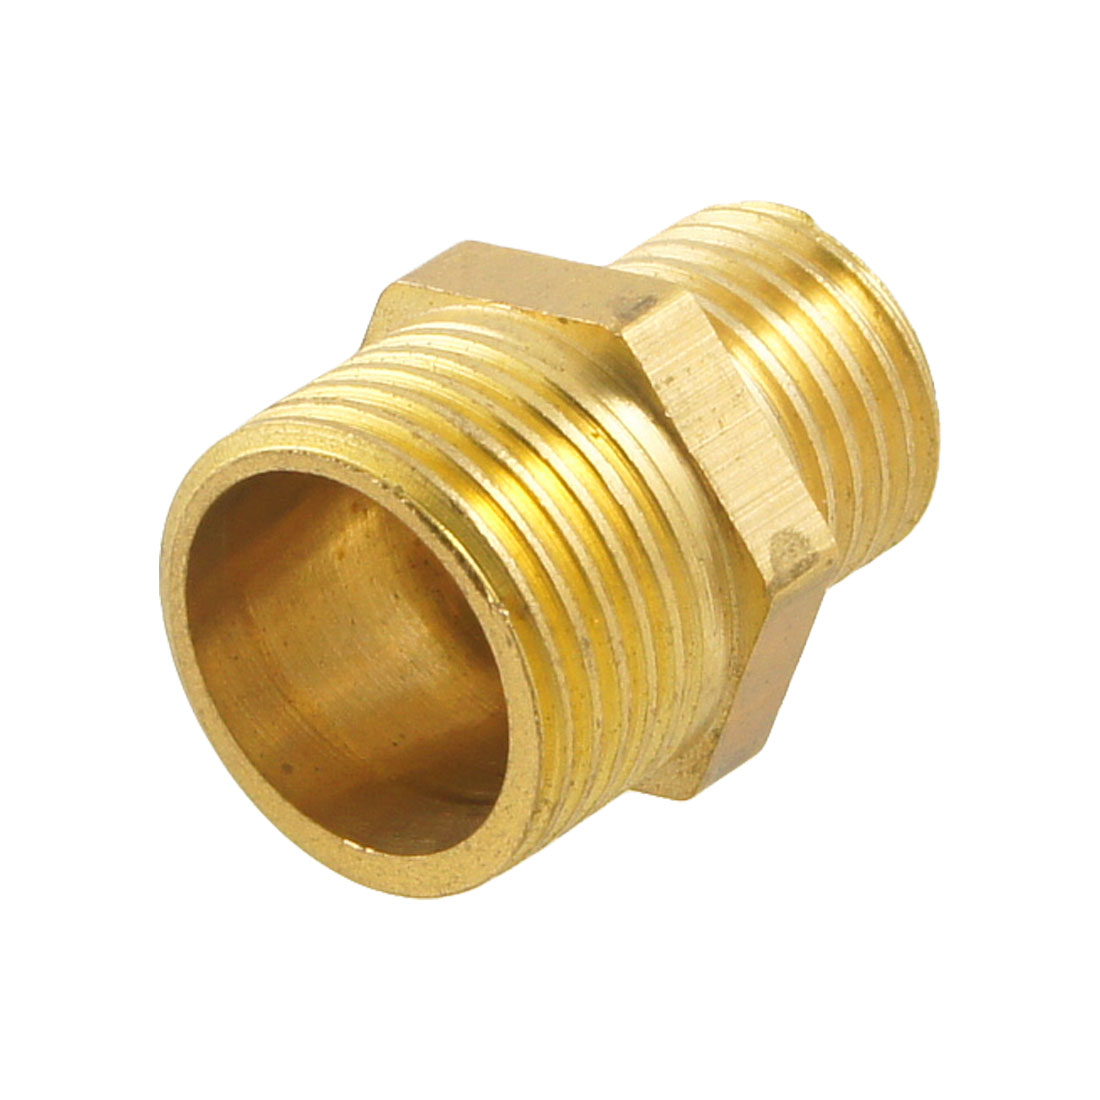 "Gold Tone Brass 3/8"" PT to 1/4"" PT Male Hex Nipple Reducing Connector Fitting"